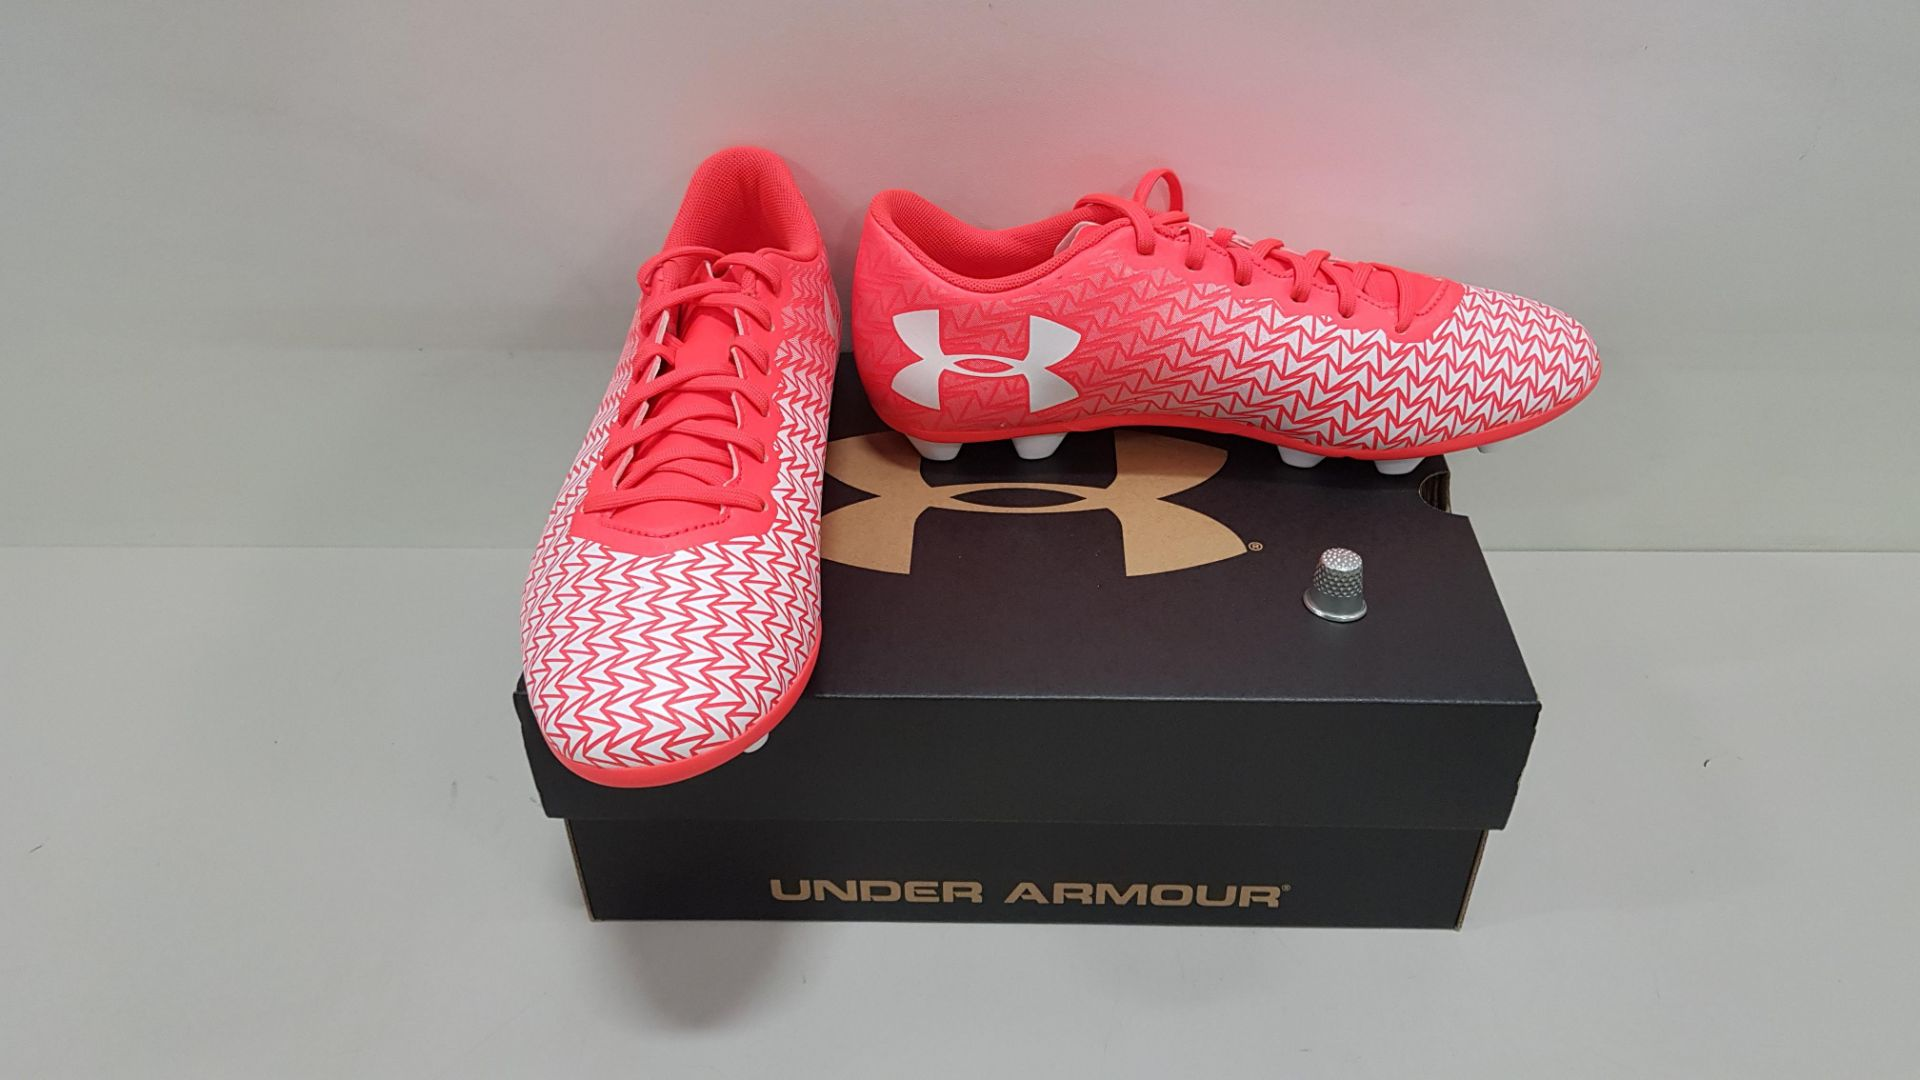 6 X BRAND NEW UNDER ARMOUR CF FORCE 3.0 FG-R-JR FOOTBALL BOOTS UK SIZE 5